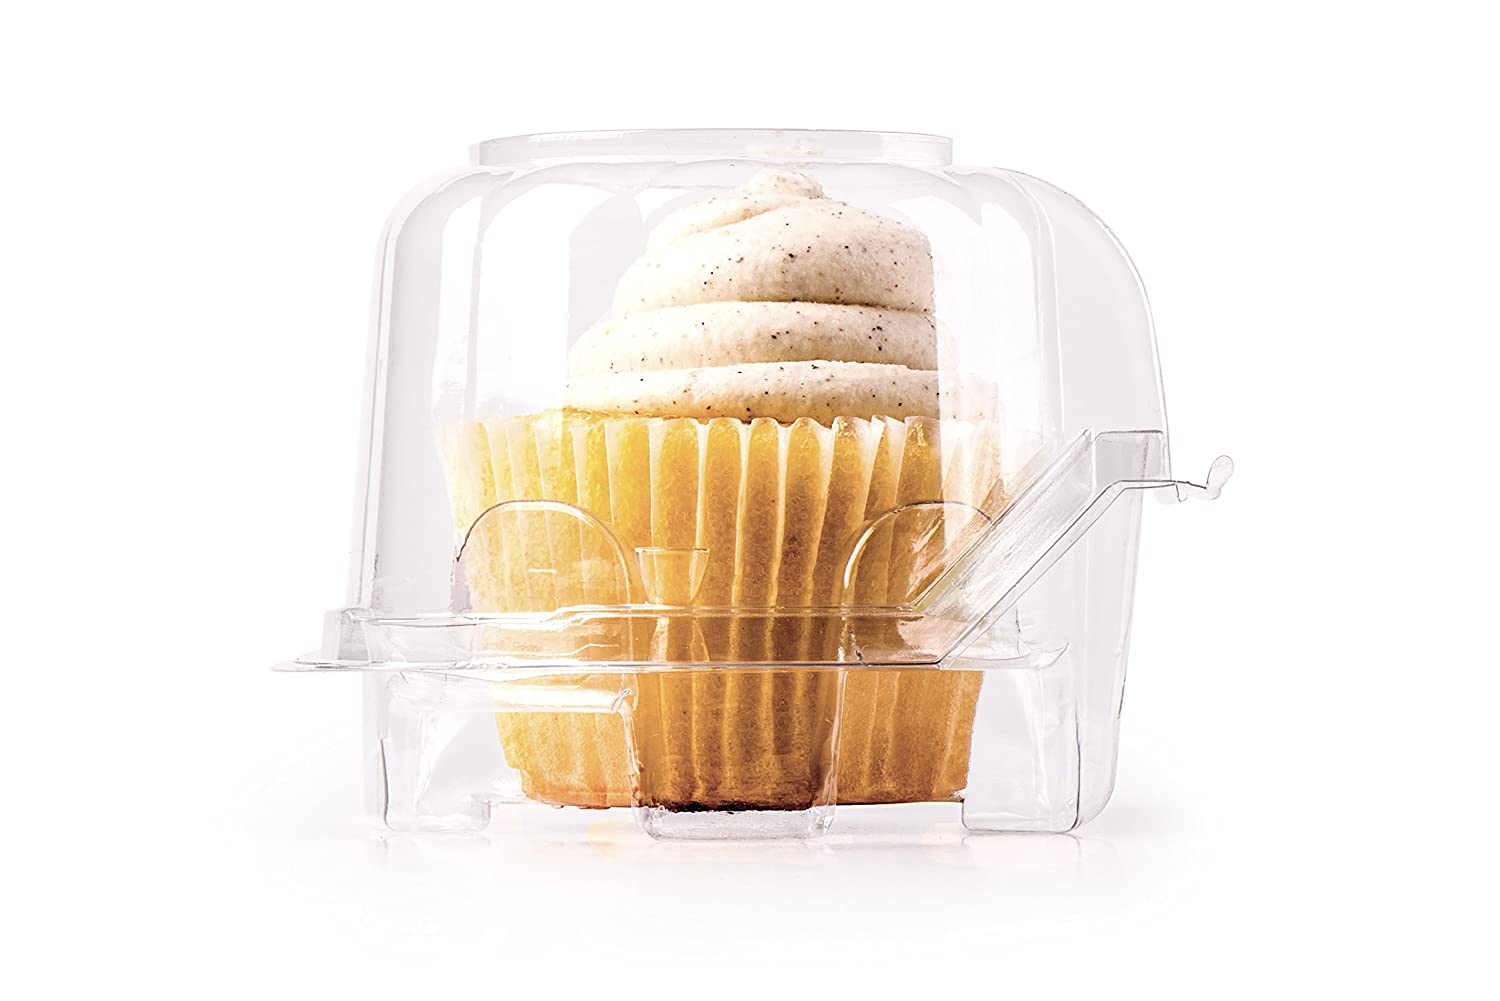 Individual Plastic Cupcake Boxes | Set of 48 Clear Plastic Dome Single Compartment Cupcake Holders With Improved Closing Mechanism … Cupcake Supply Co 1X48CCHOLDERS